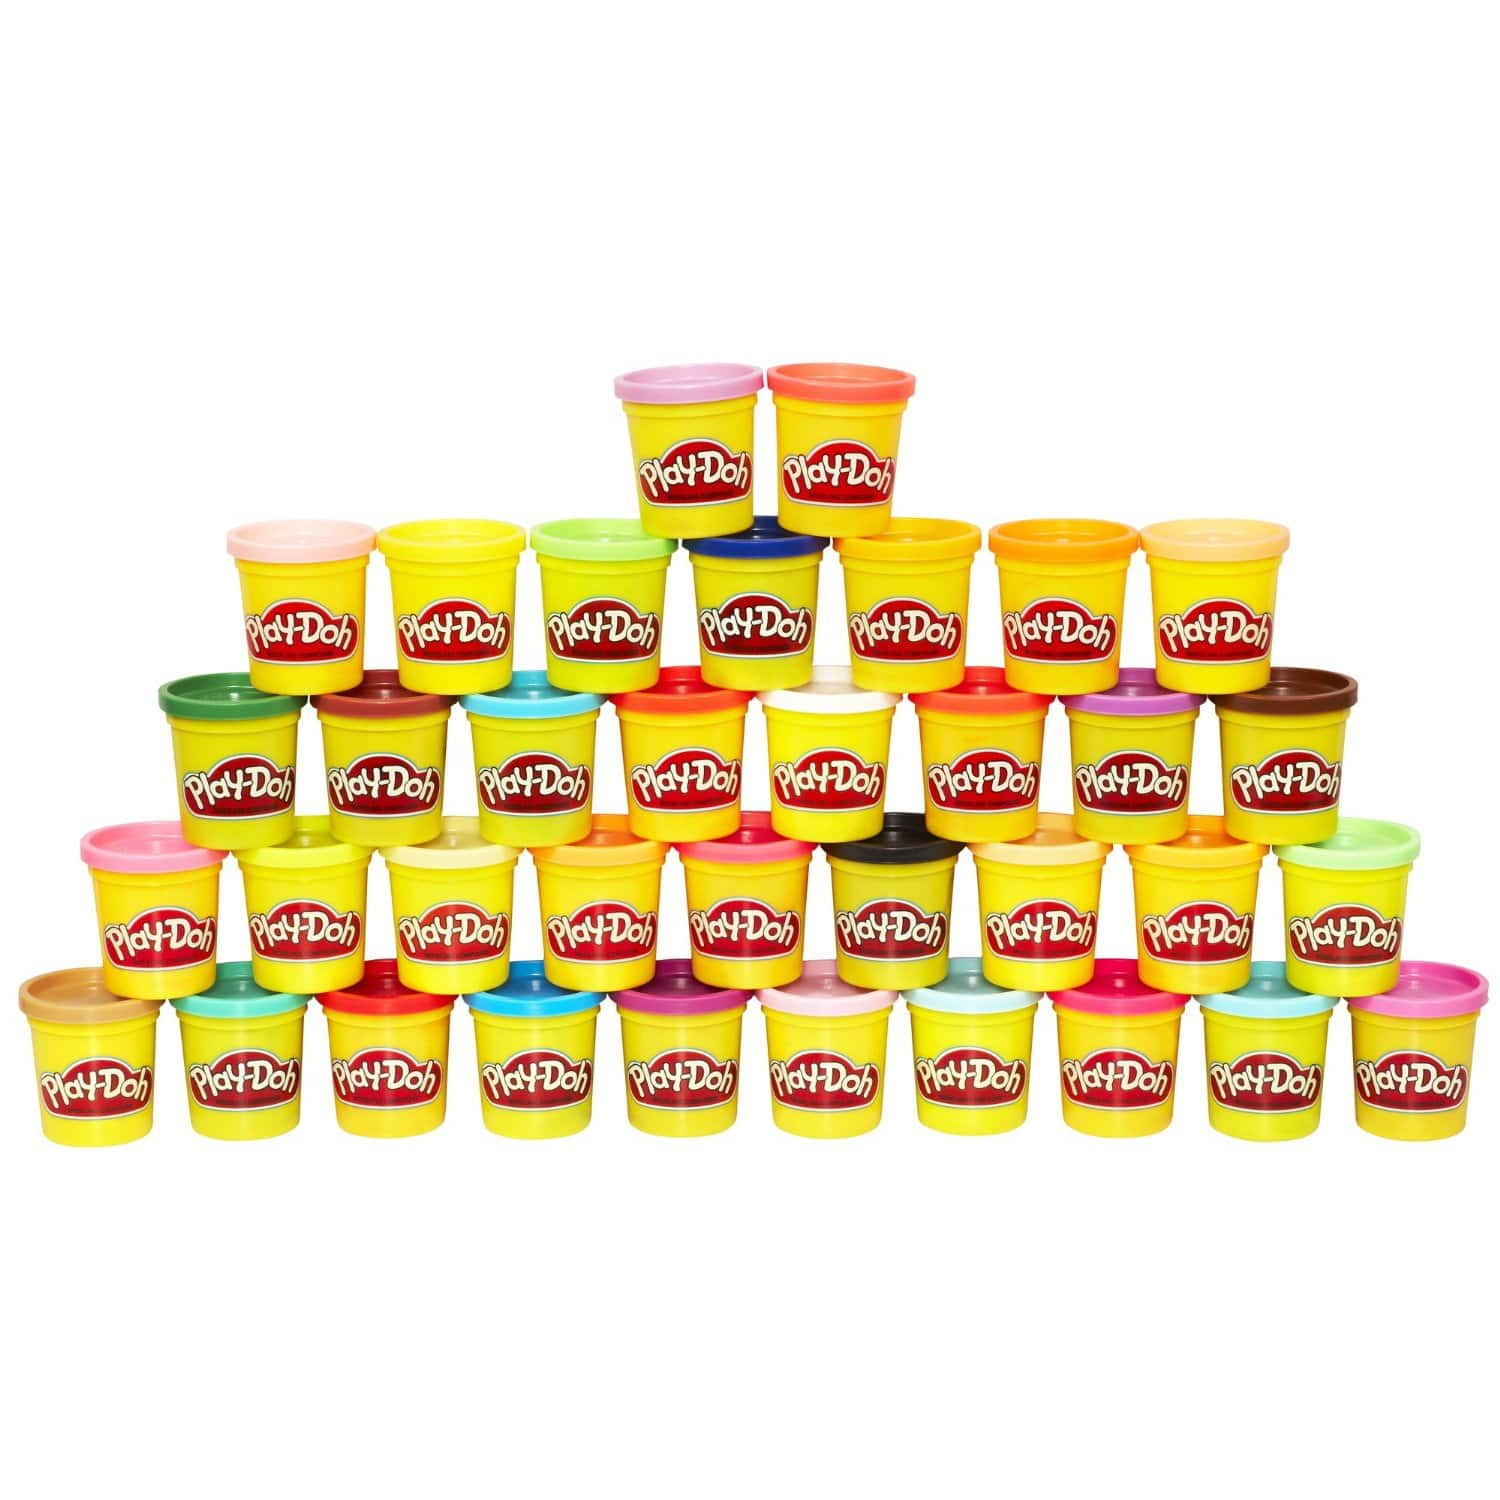 36 cans - 3oz Play Doh Mega Pack (36 Cans) $12.49 at Amazon